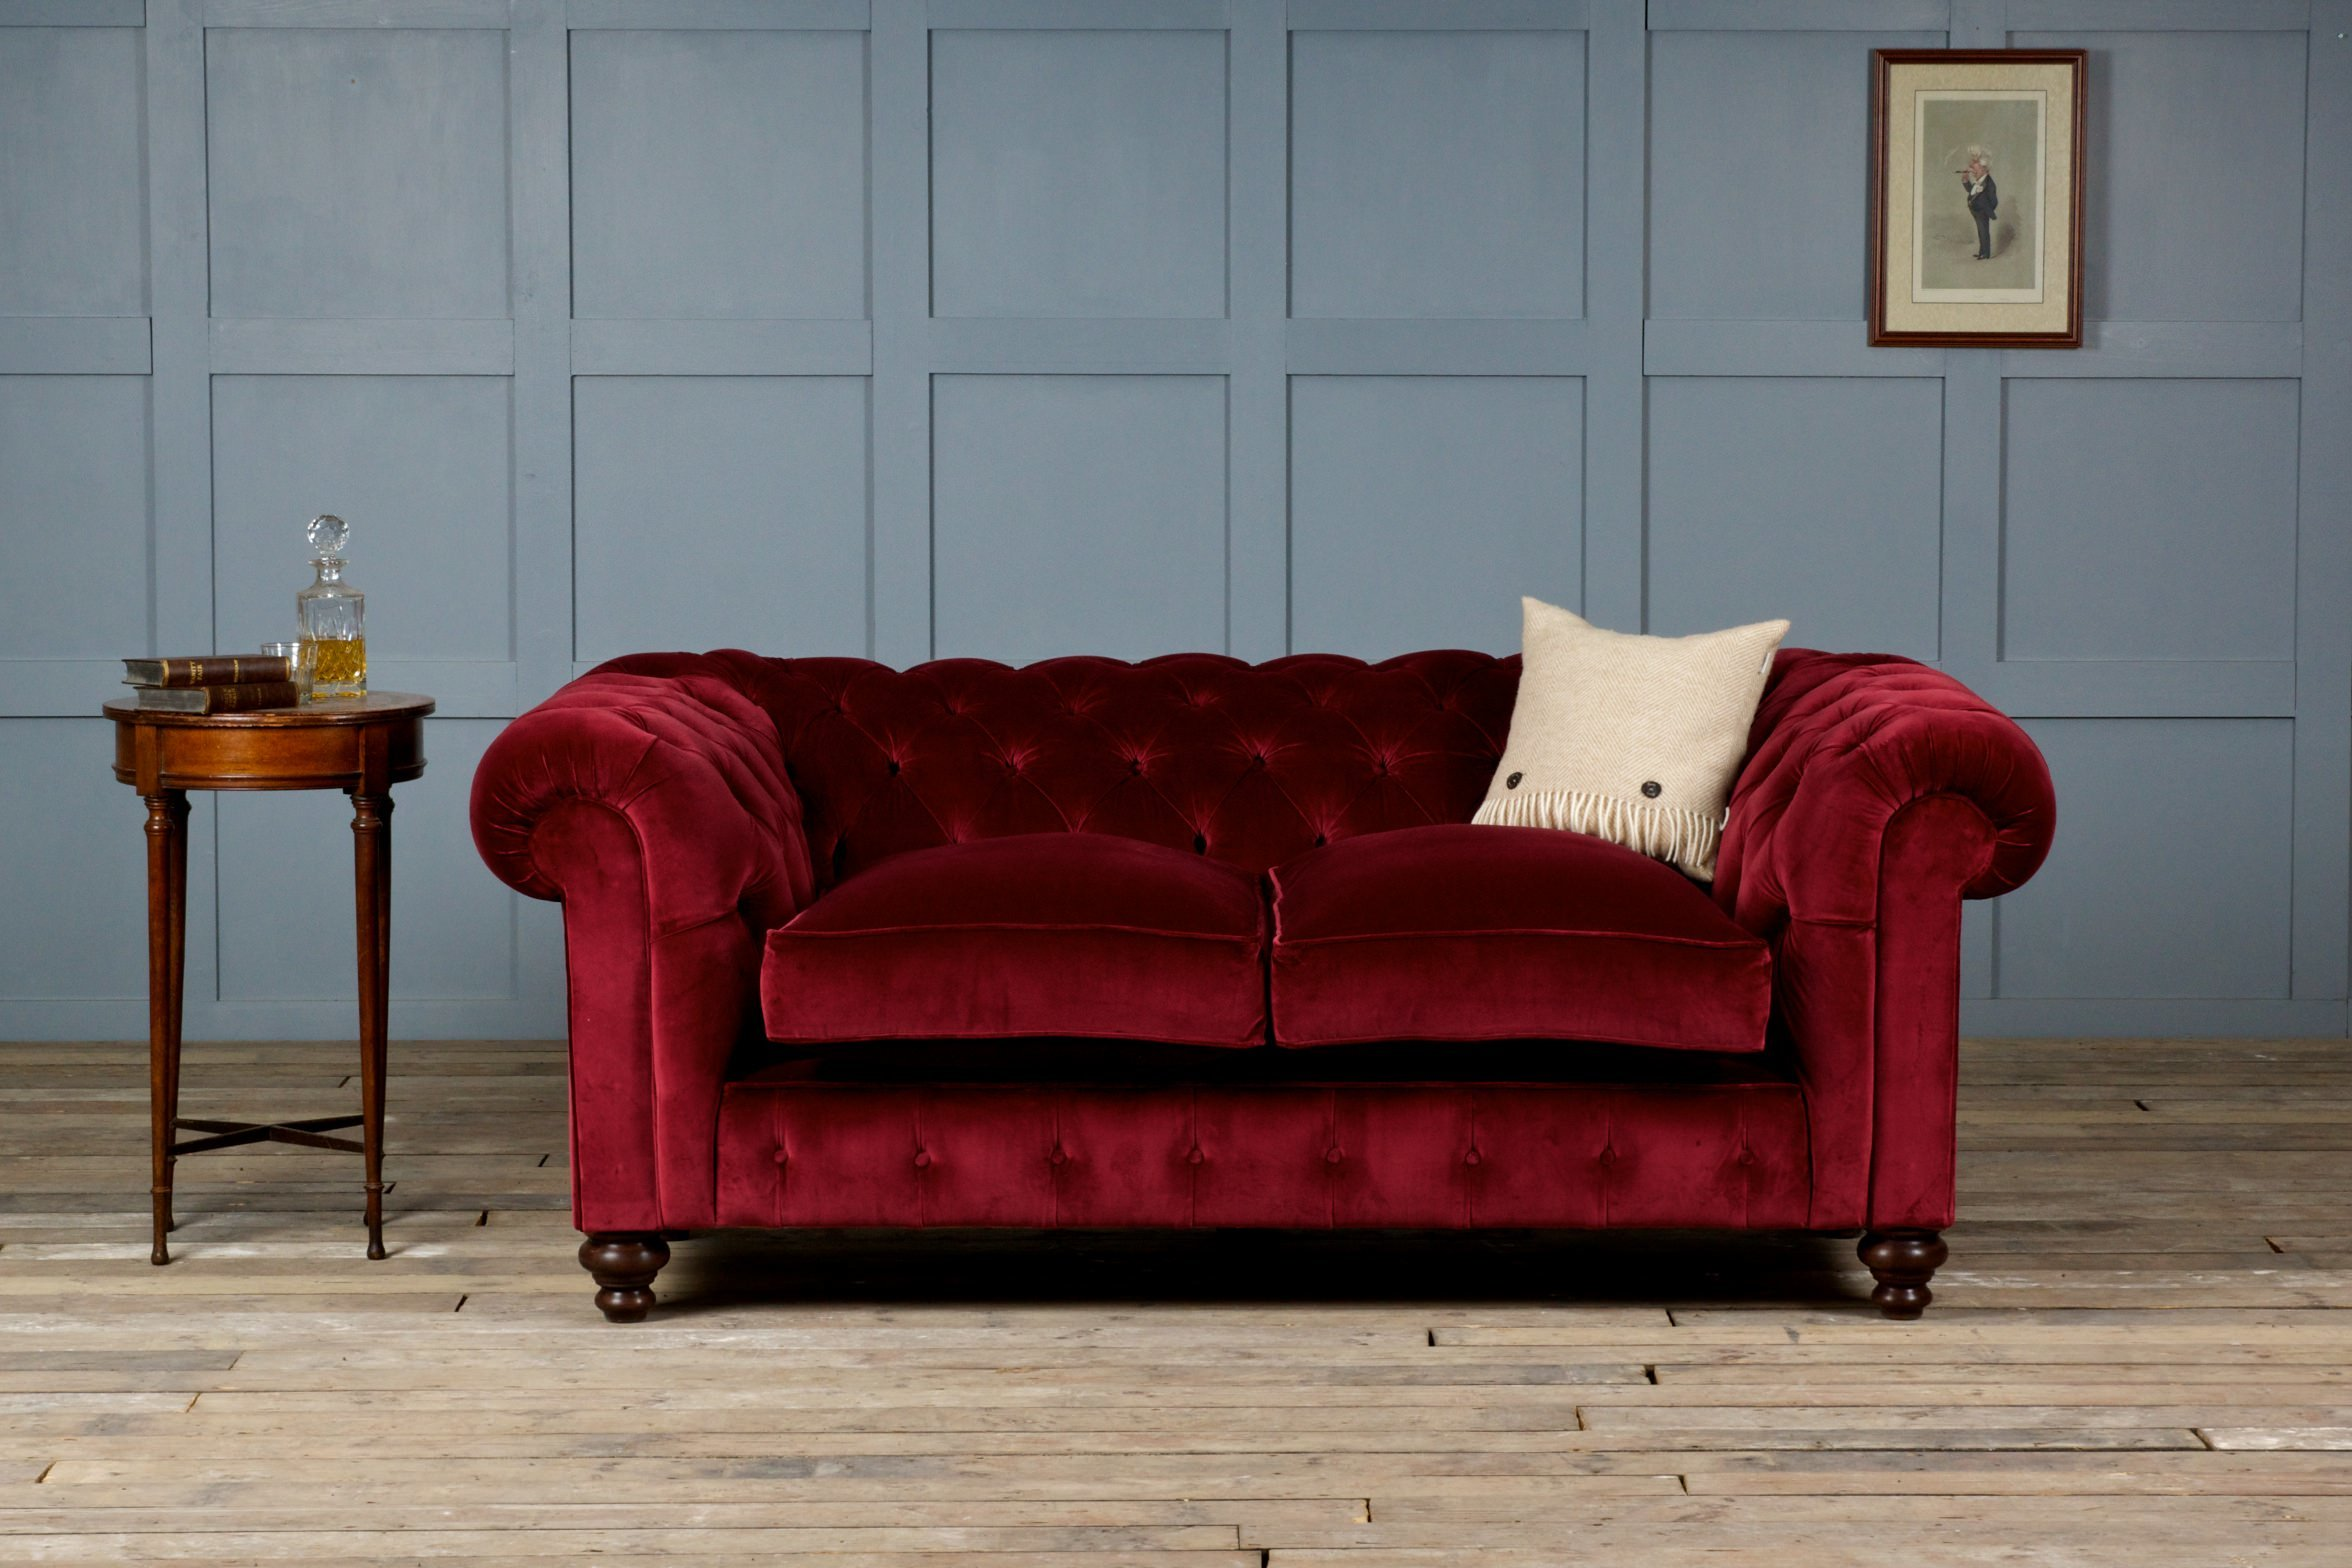 Magnificent Classic Red Sofa 66 In Sofas and Couches Ideas with Classic Red Sofa